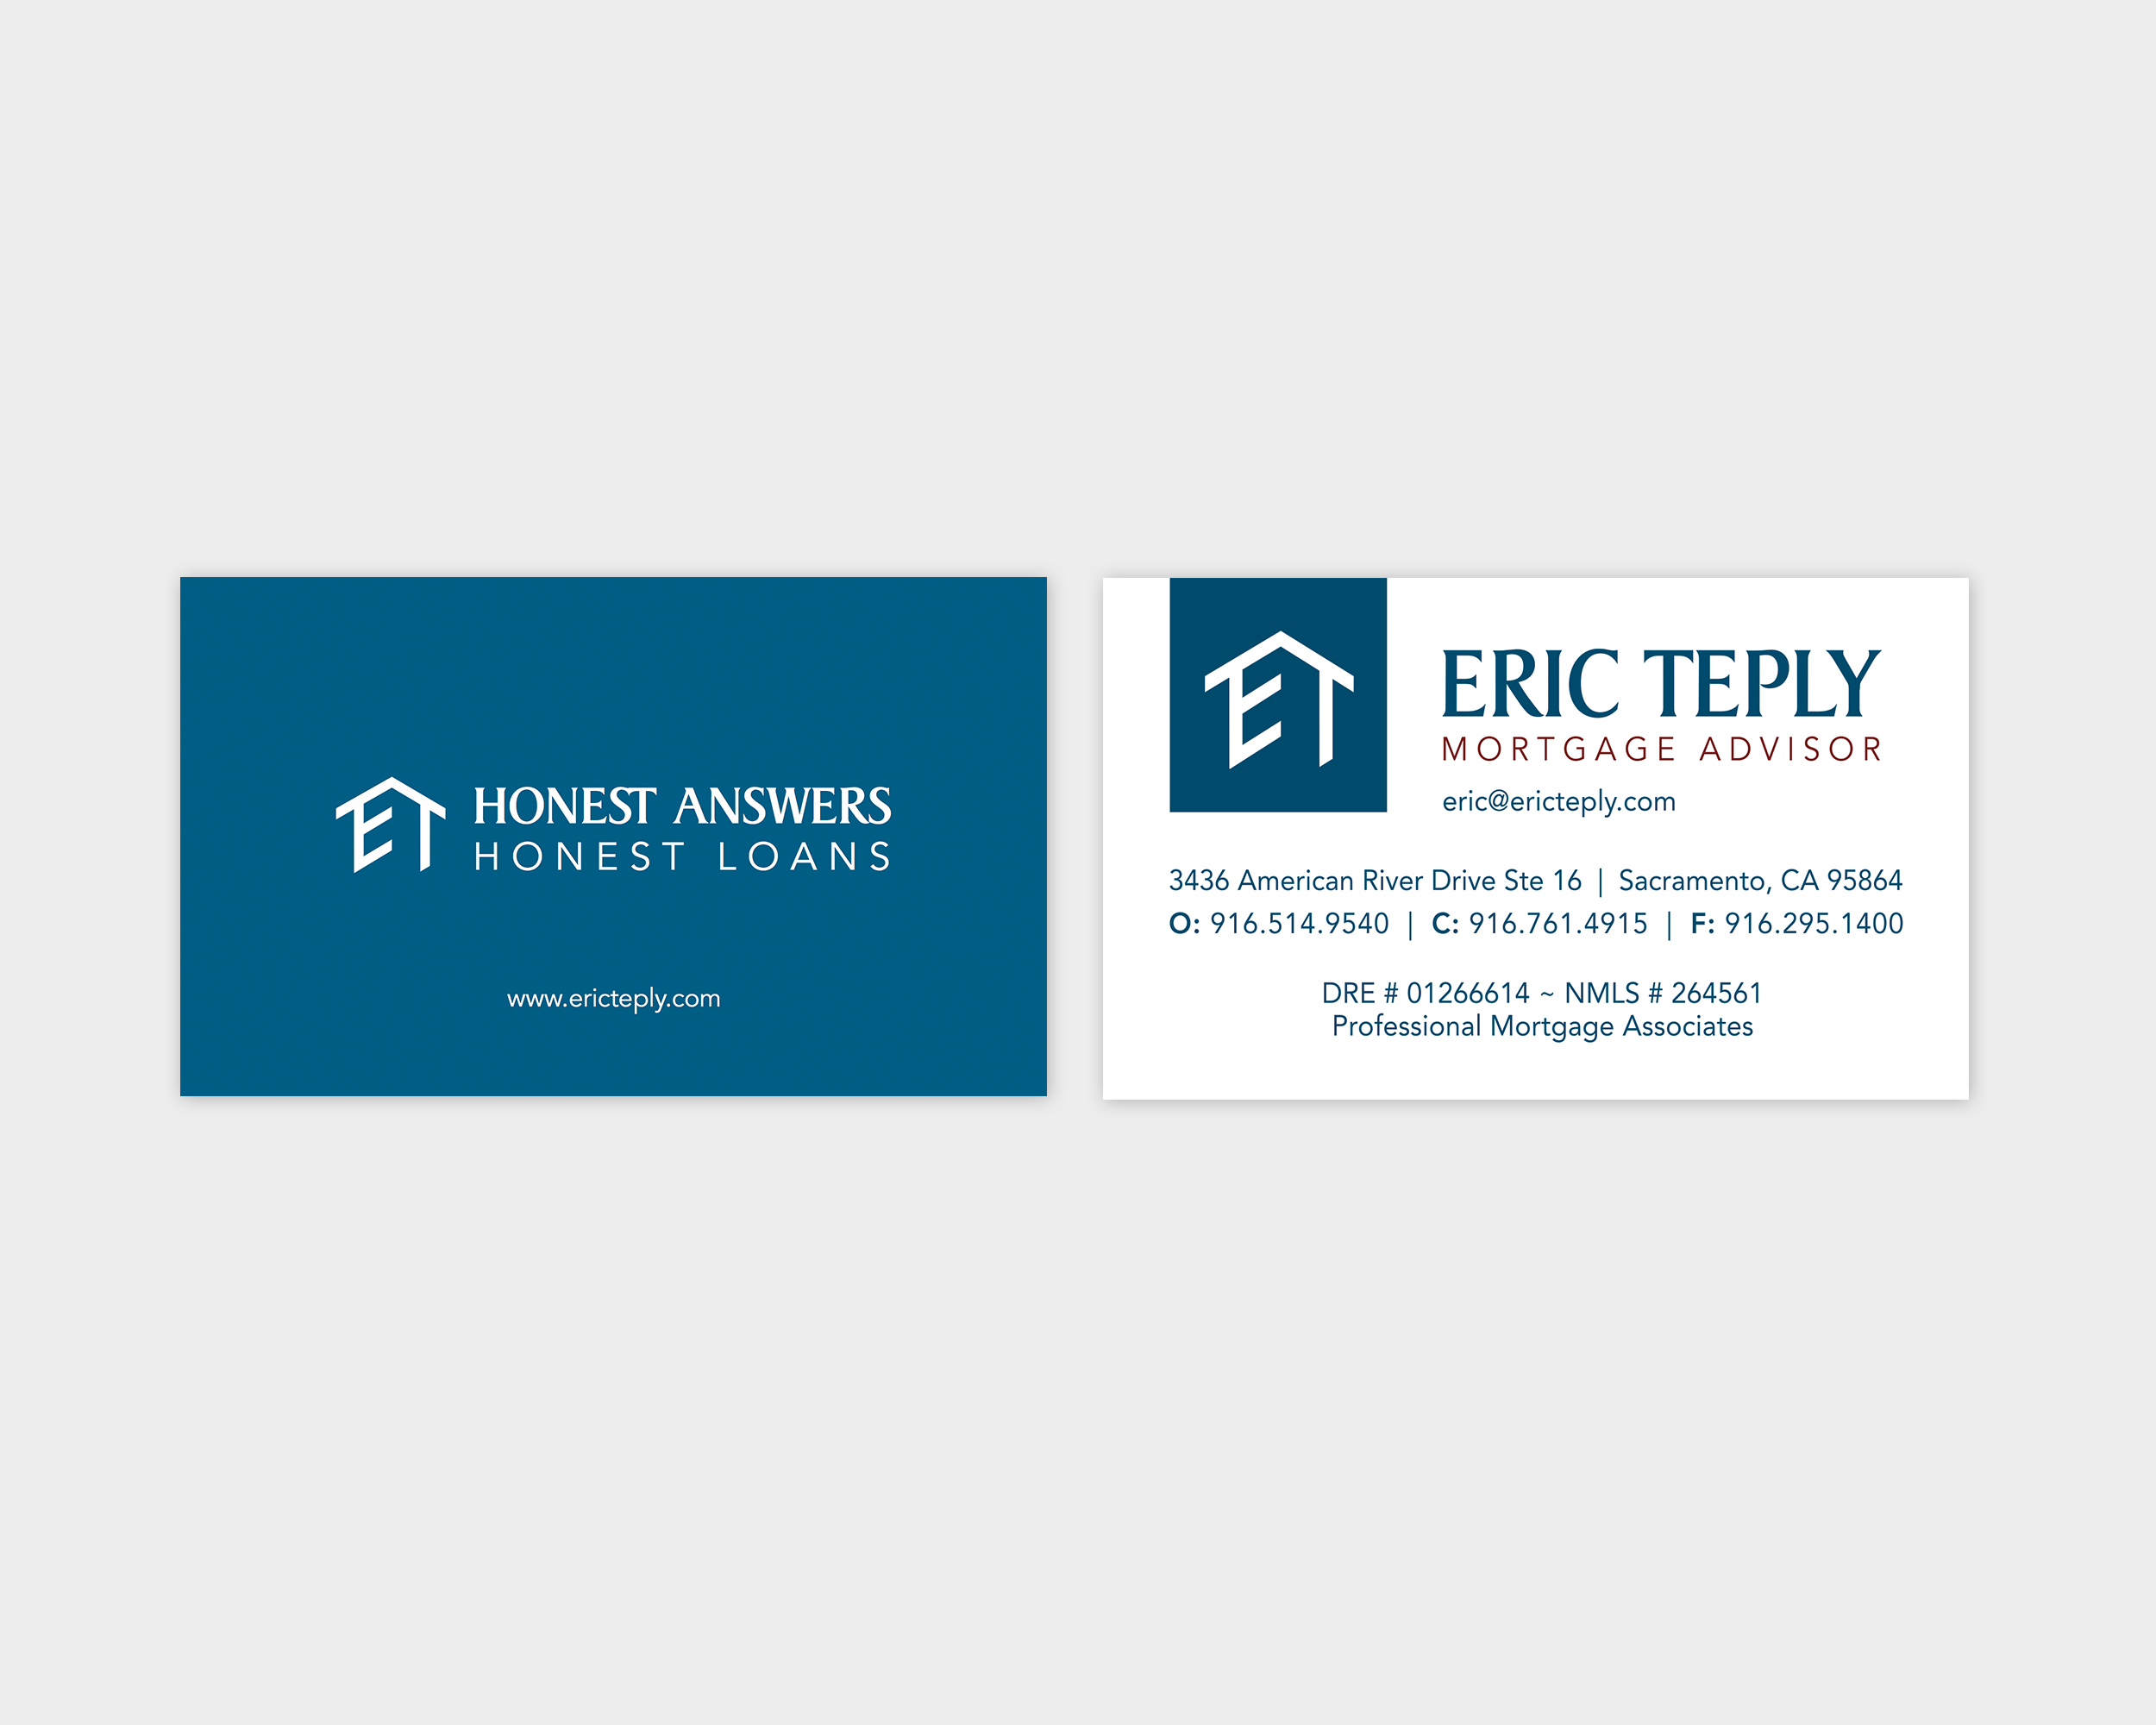 Eric Teply Mortgage Advisor Business Card Design